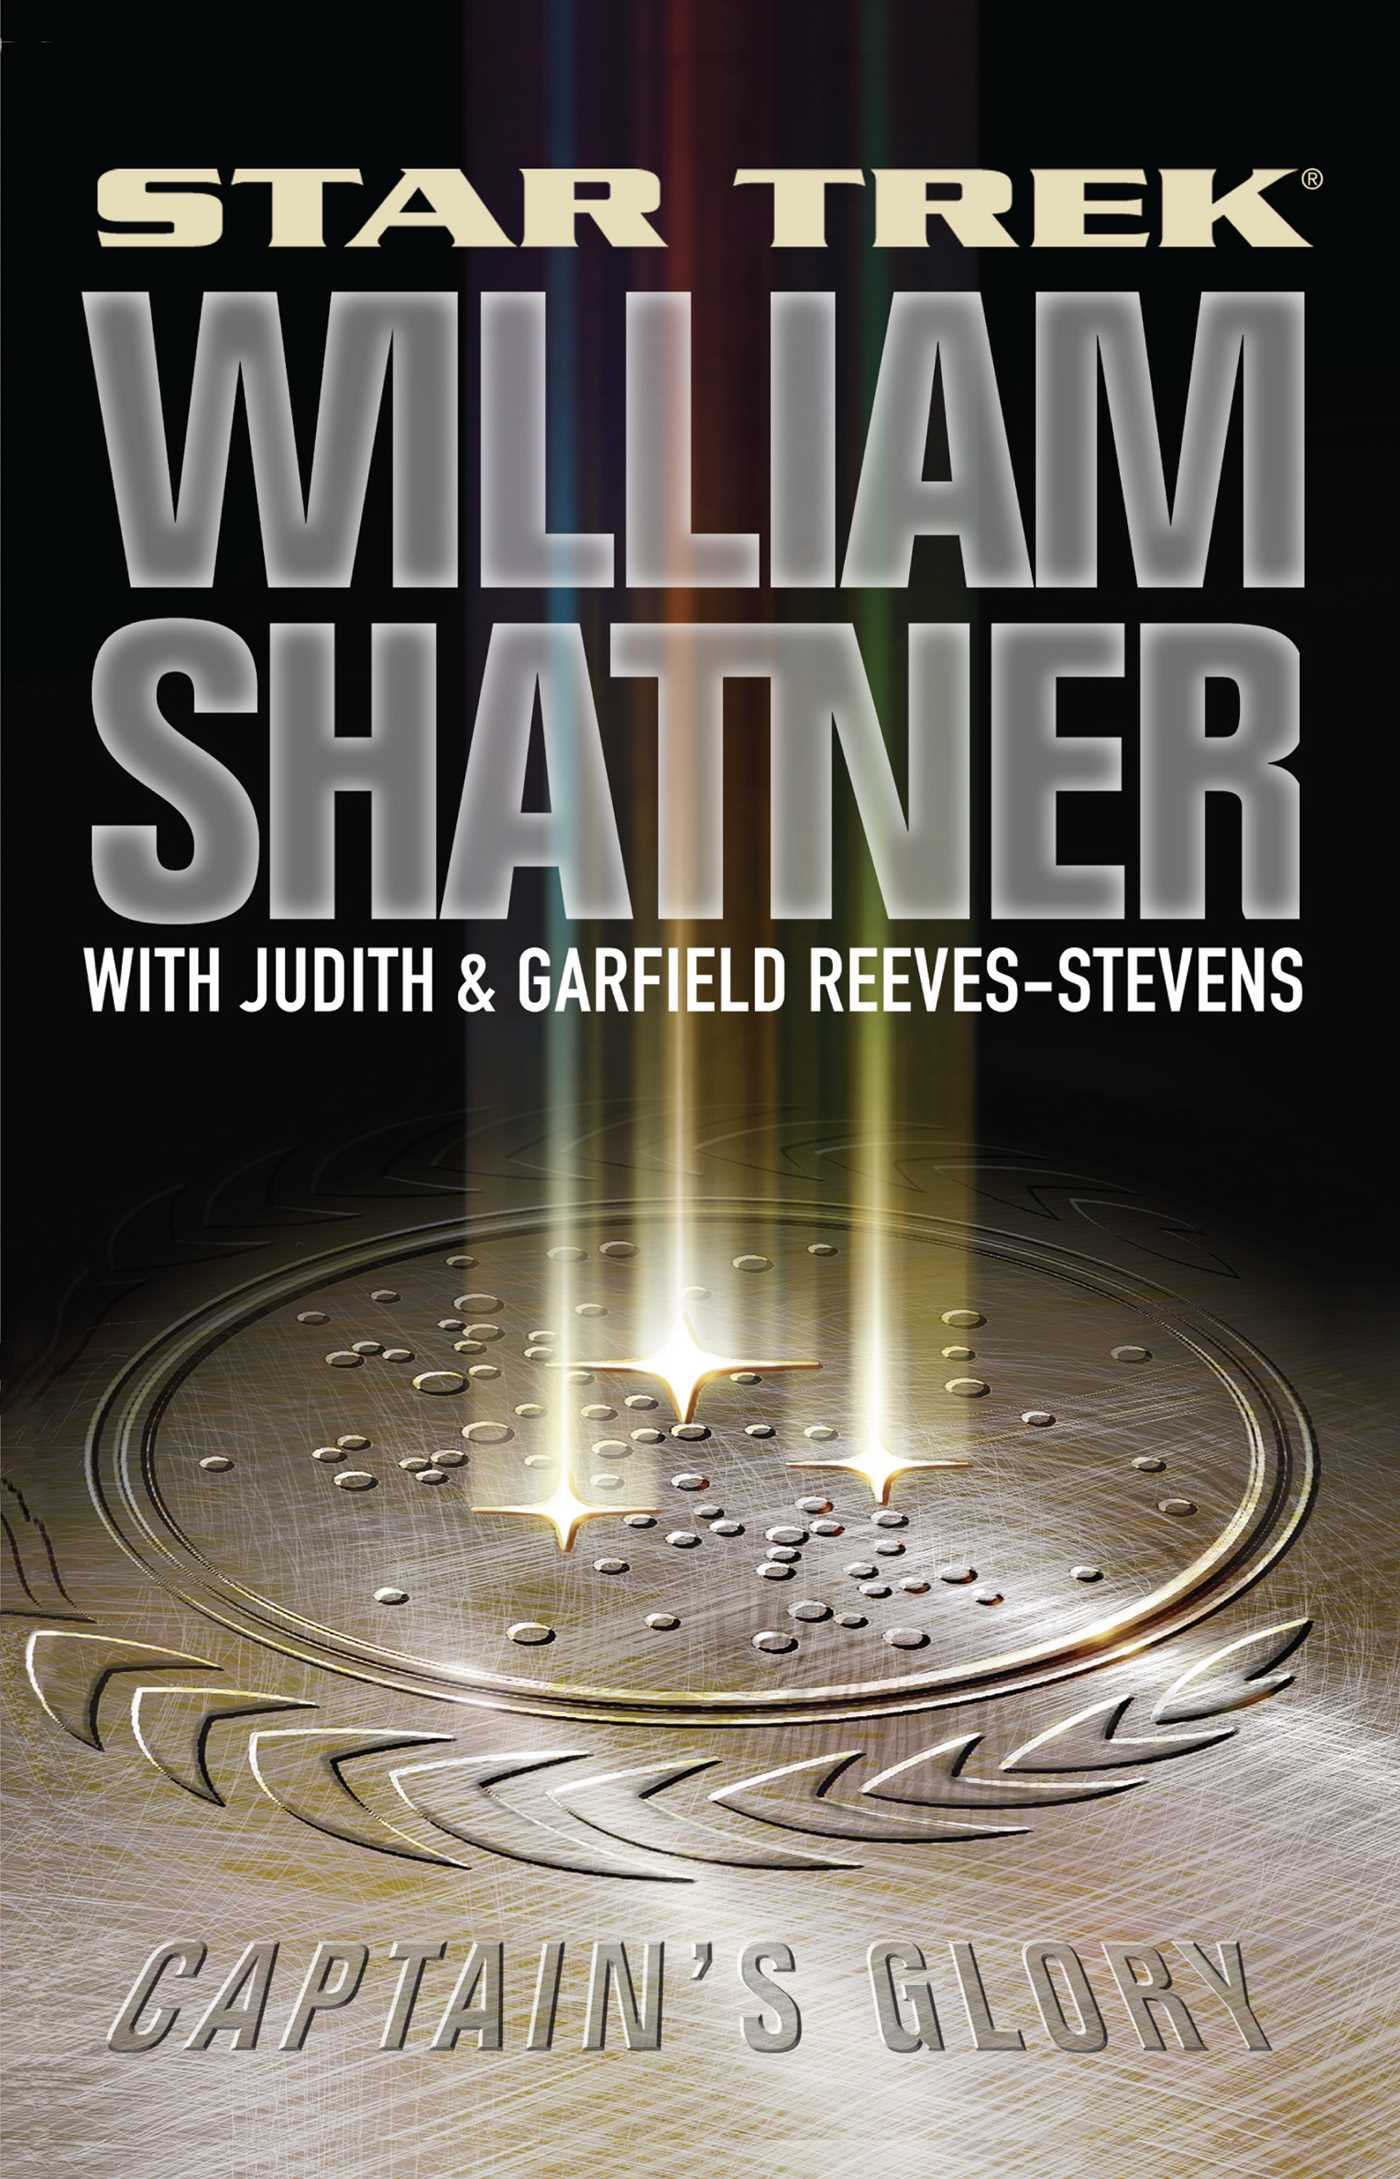 William shatner official publisher page simon schuster canada book cover image jpg captains glory ebook 9780743453752 fandeluxe Ebook collections